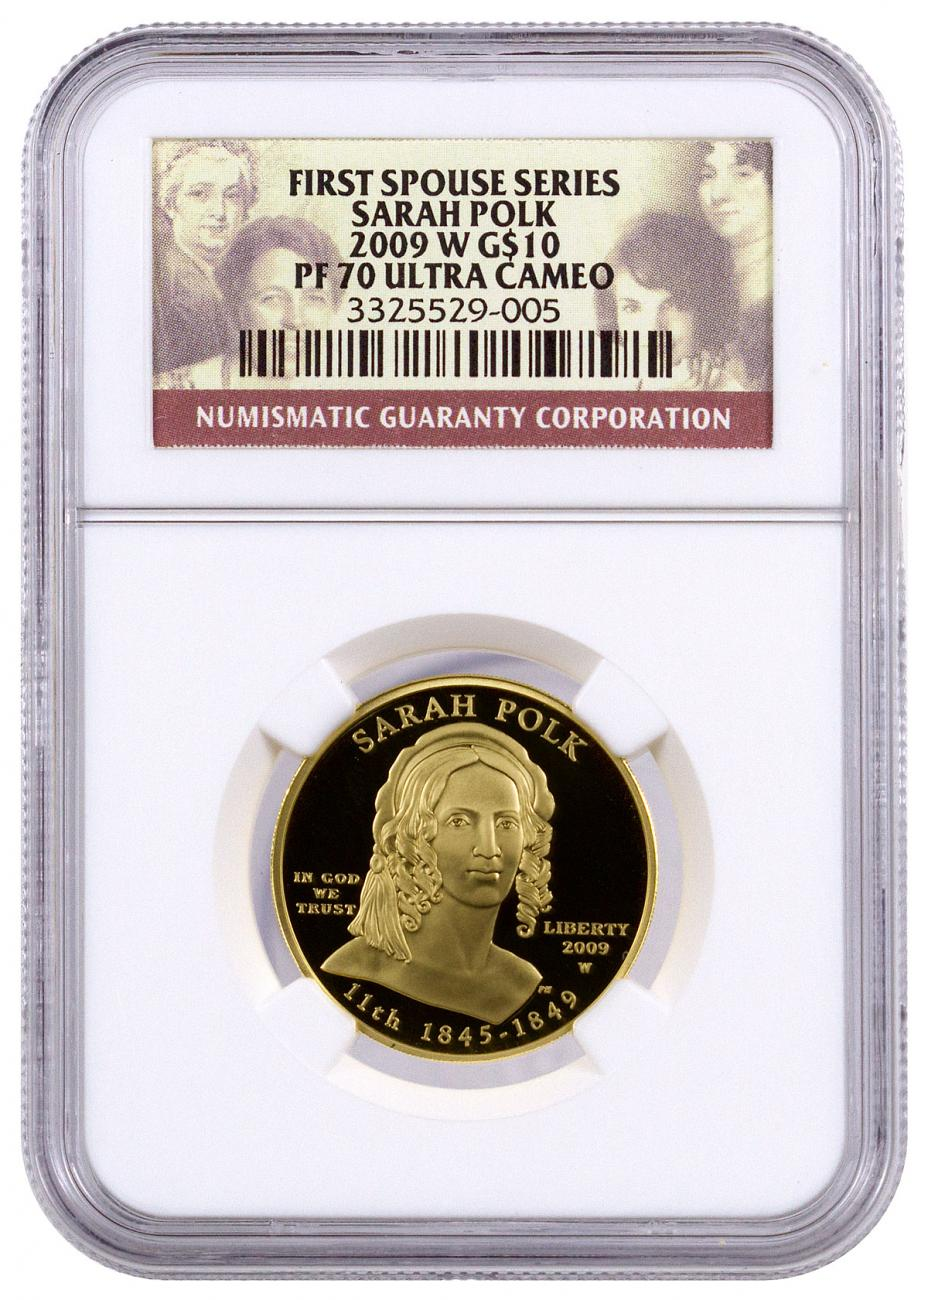 2009-W Sarah Polk First Spouse Gold Proof $10 NGC PF70 UC